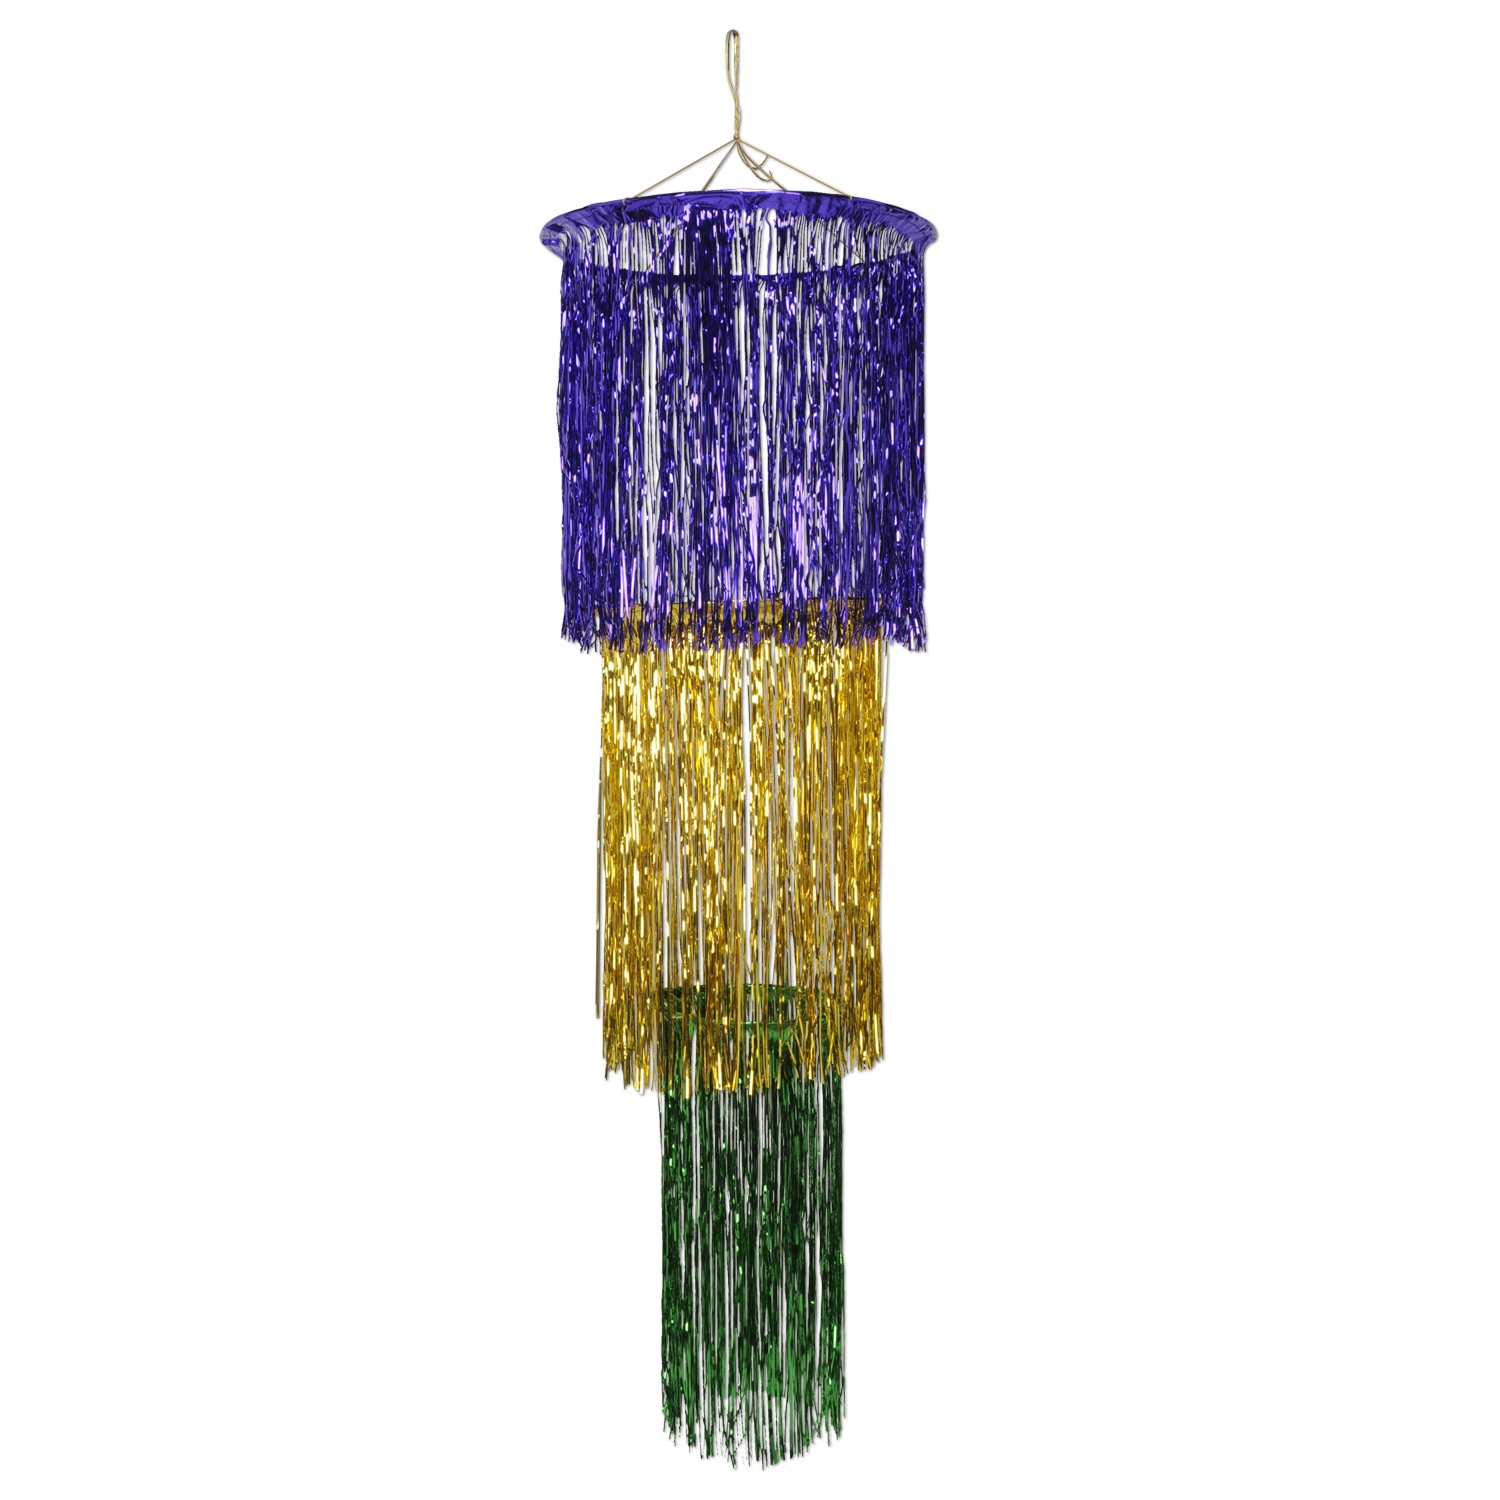 3 Tier Mardi Gras Shimmering Chandelier Pack Of 6 Green Purple